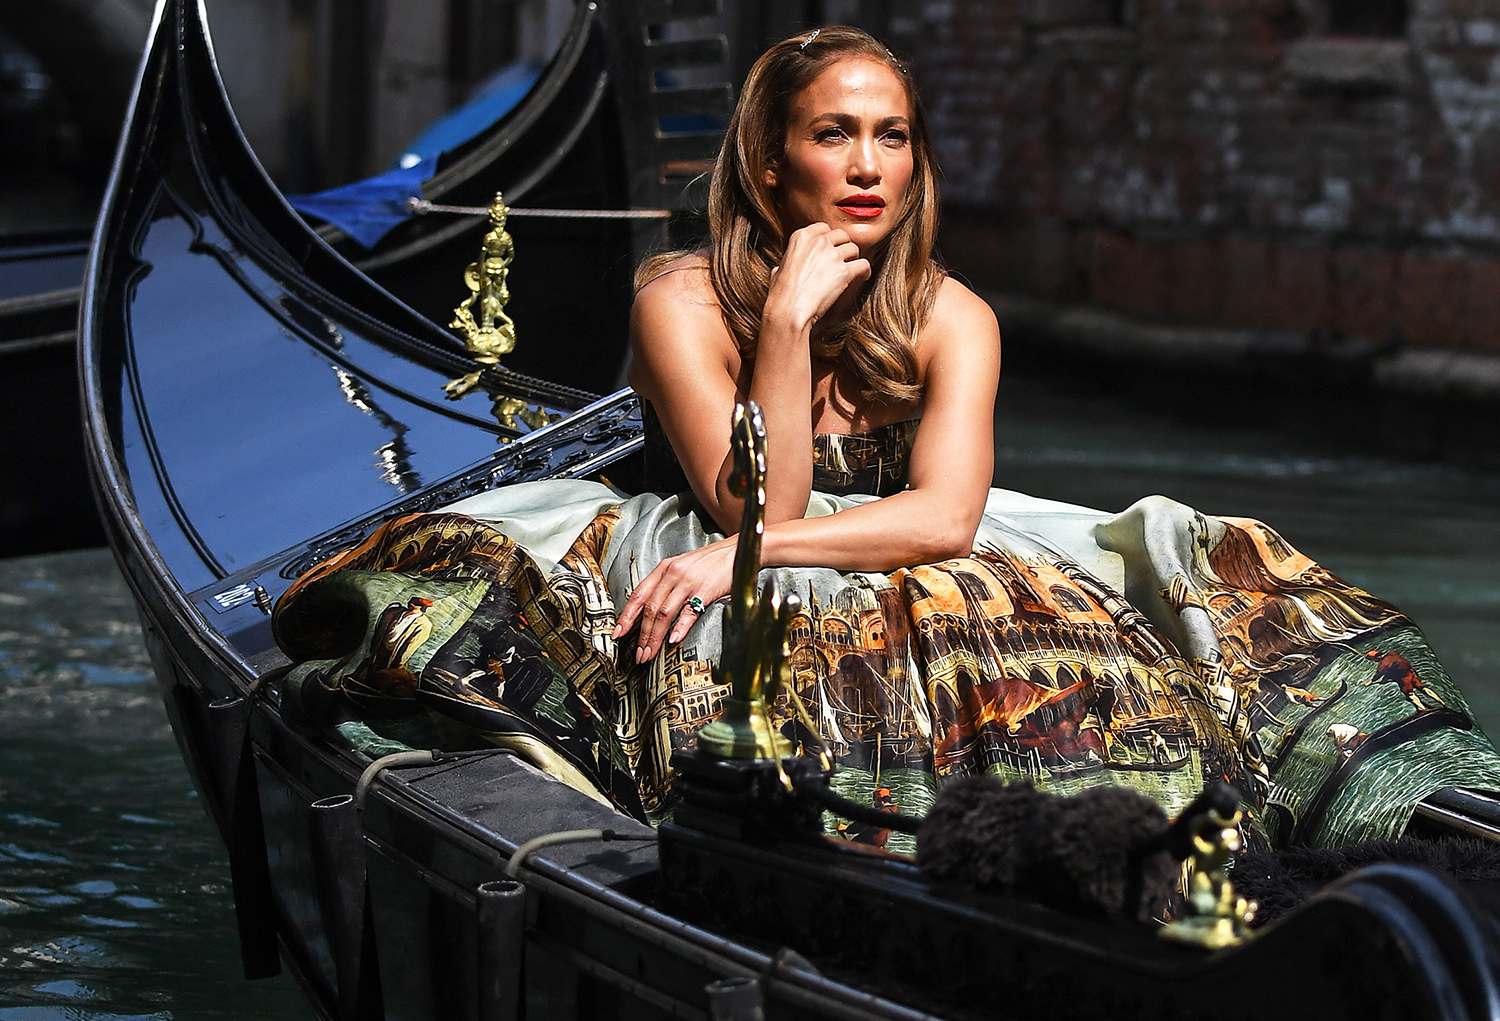 09/11/2021 Jennifer Lopez is seen on a gondola in Venice, Italy. The 52 year old took to the water for a stunning photoshoot wearing a Dolce & Gabbana strapless tulle ballgown.